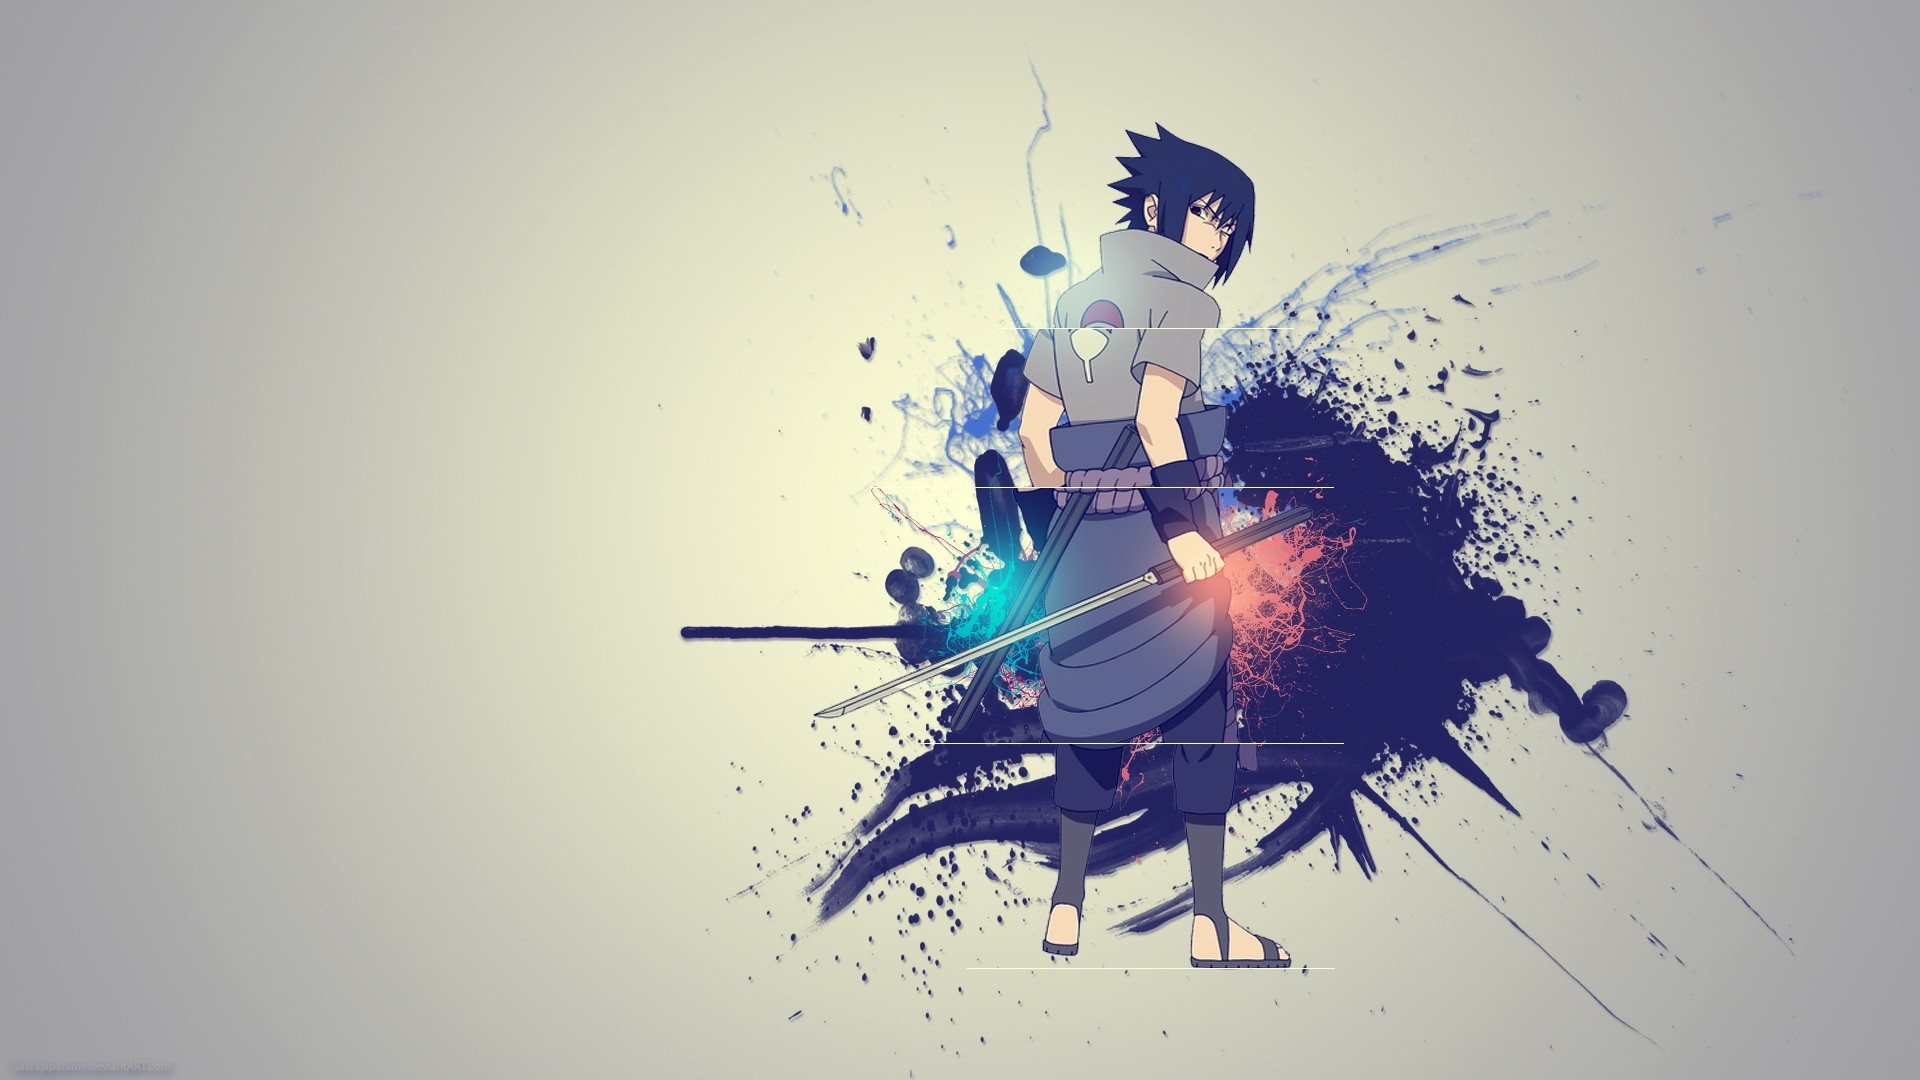 naruto shippuden wallpaper sasuke uchiha wallpapers 1920x1080 1920x1080